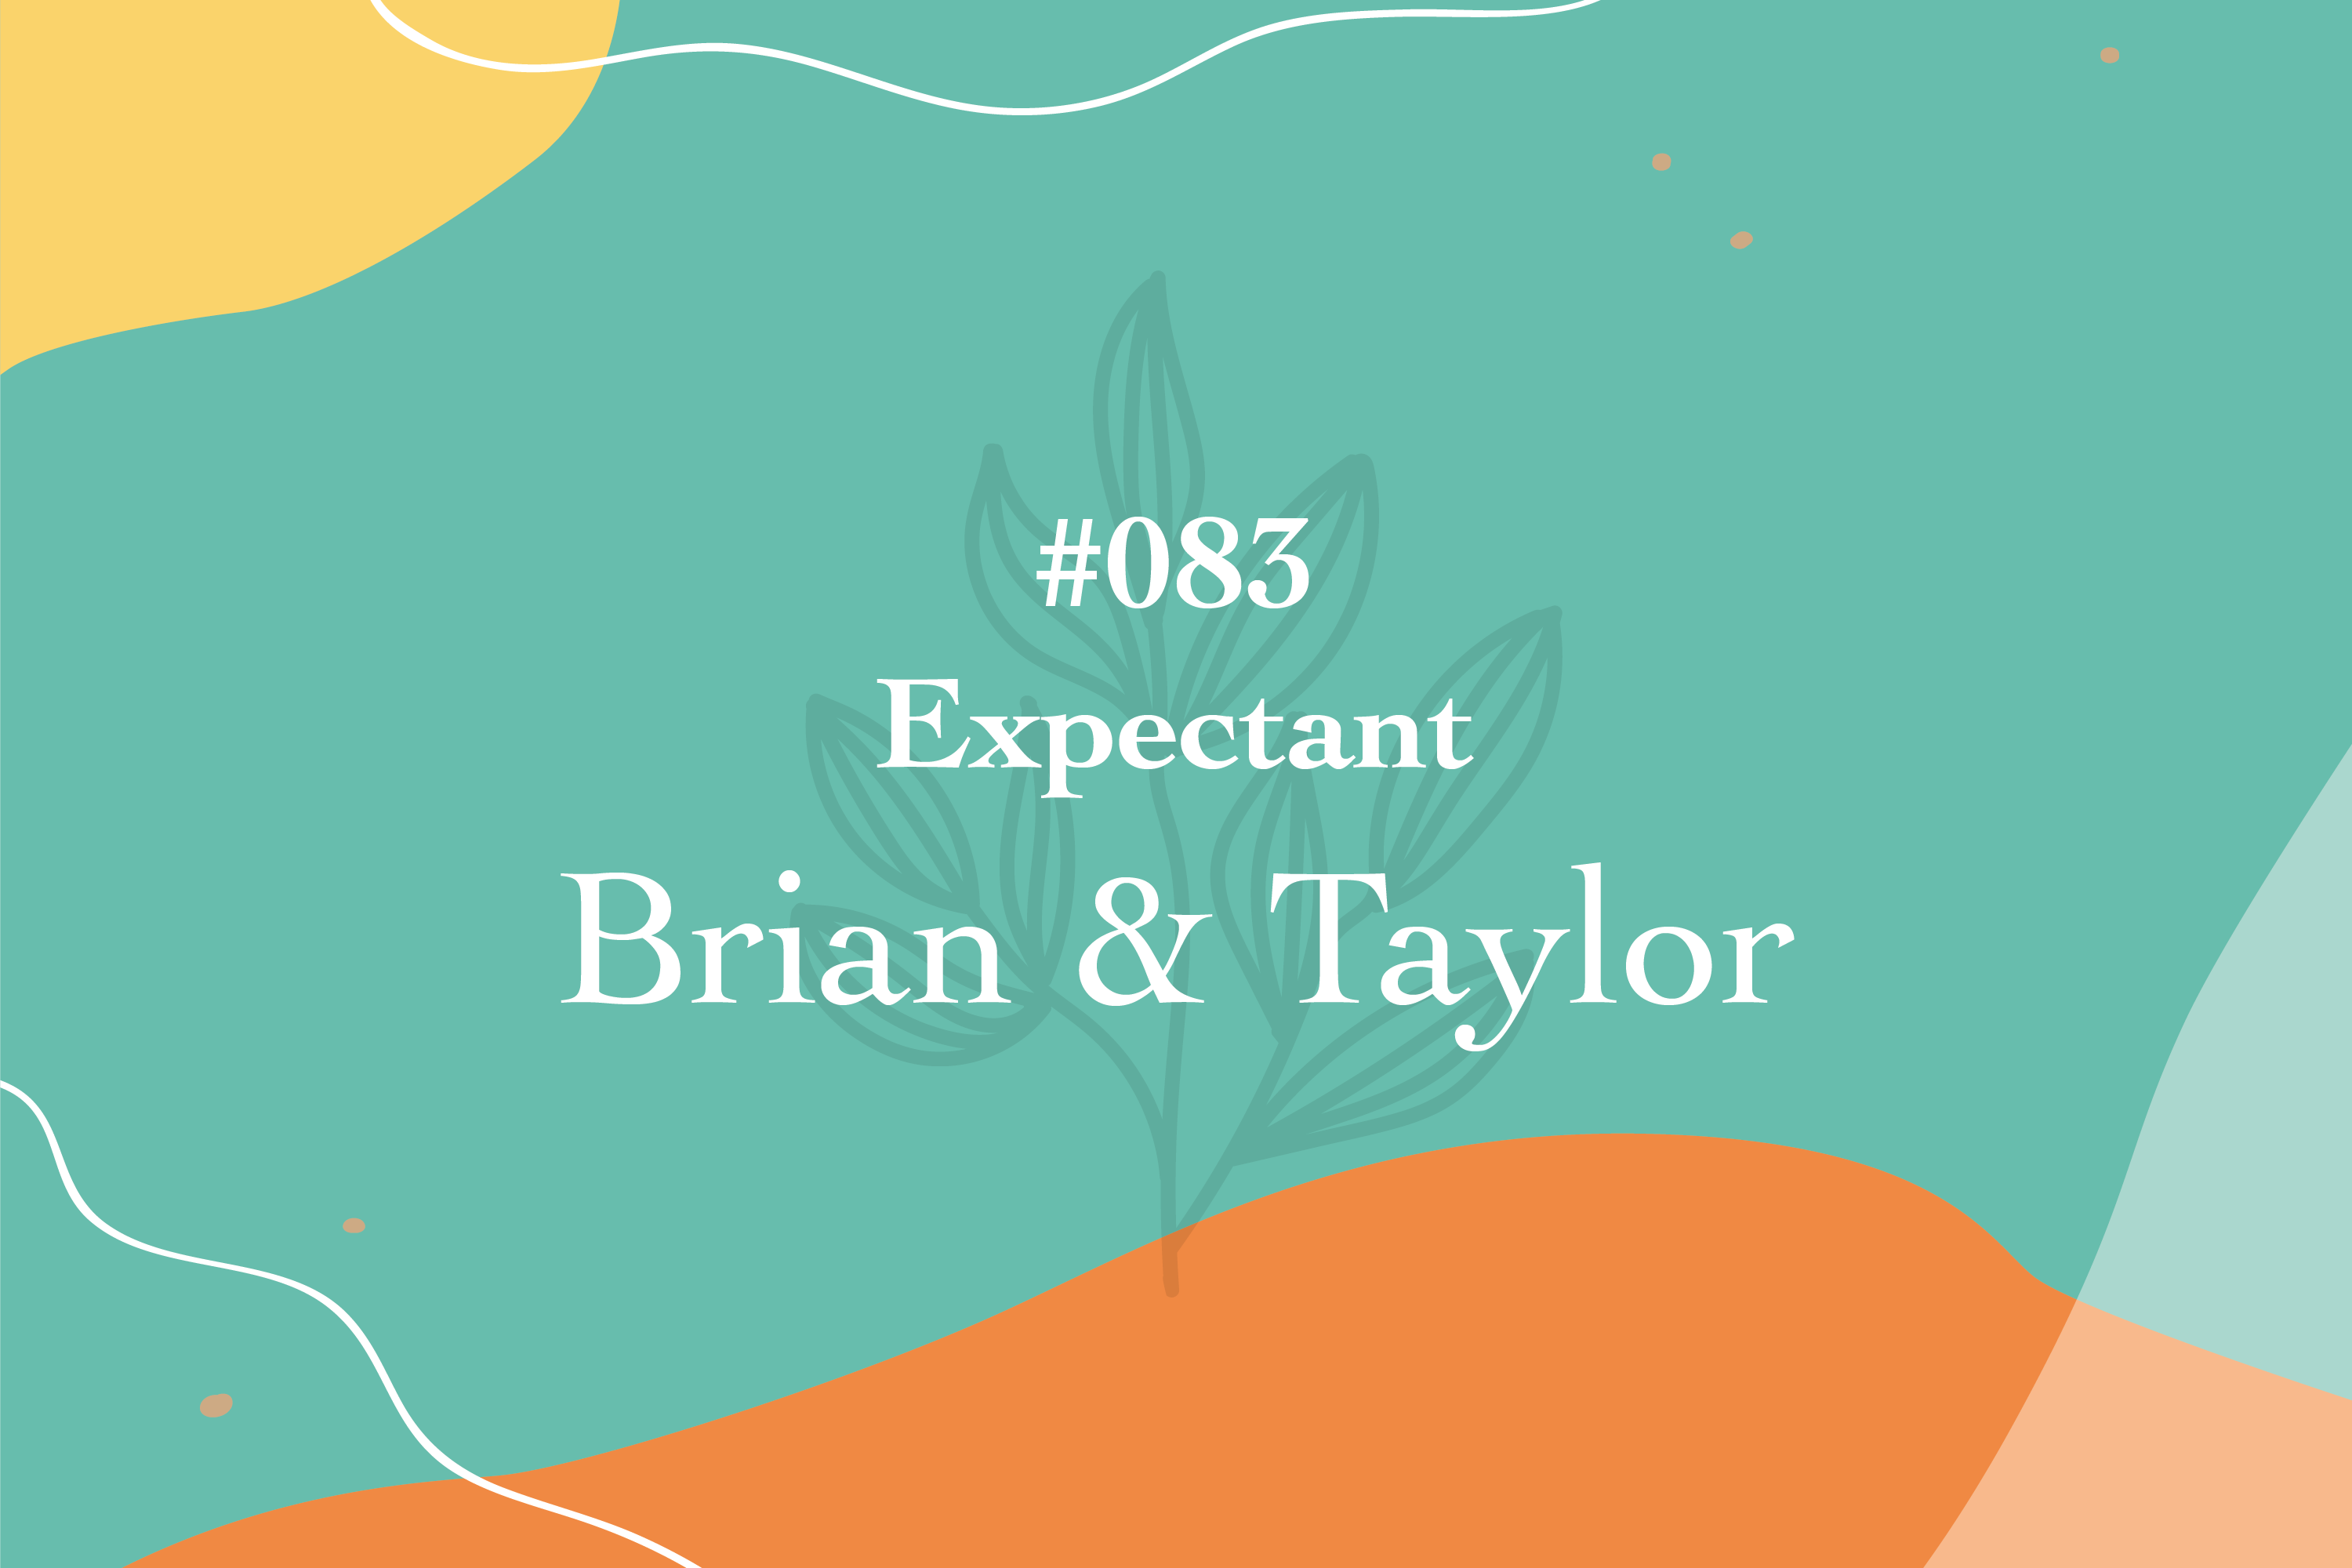 #083 Expectant: Brian & Taylor